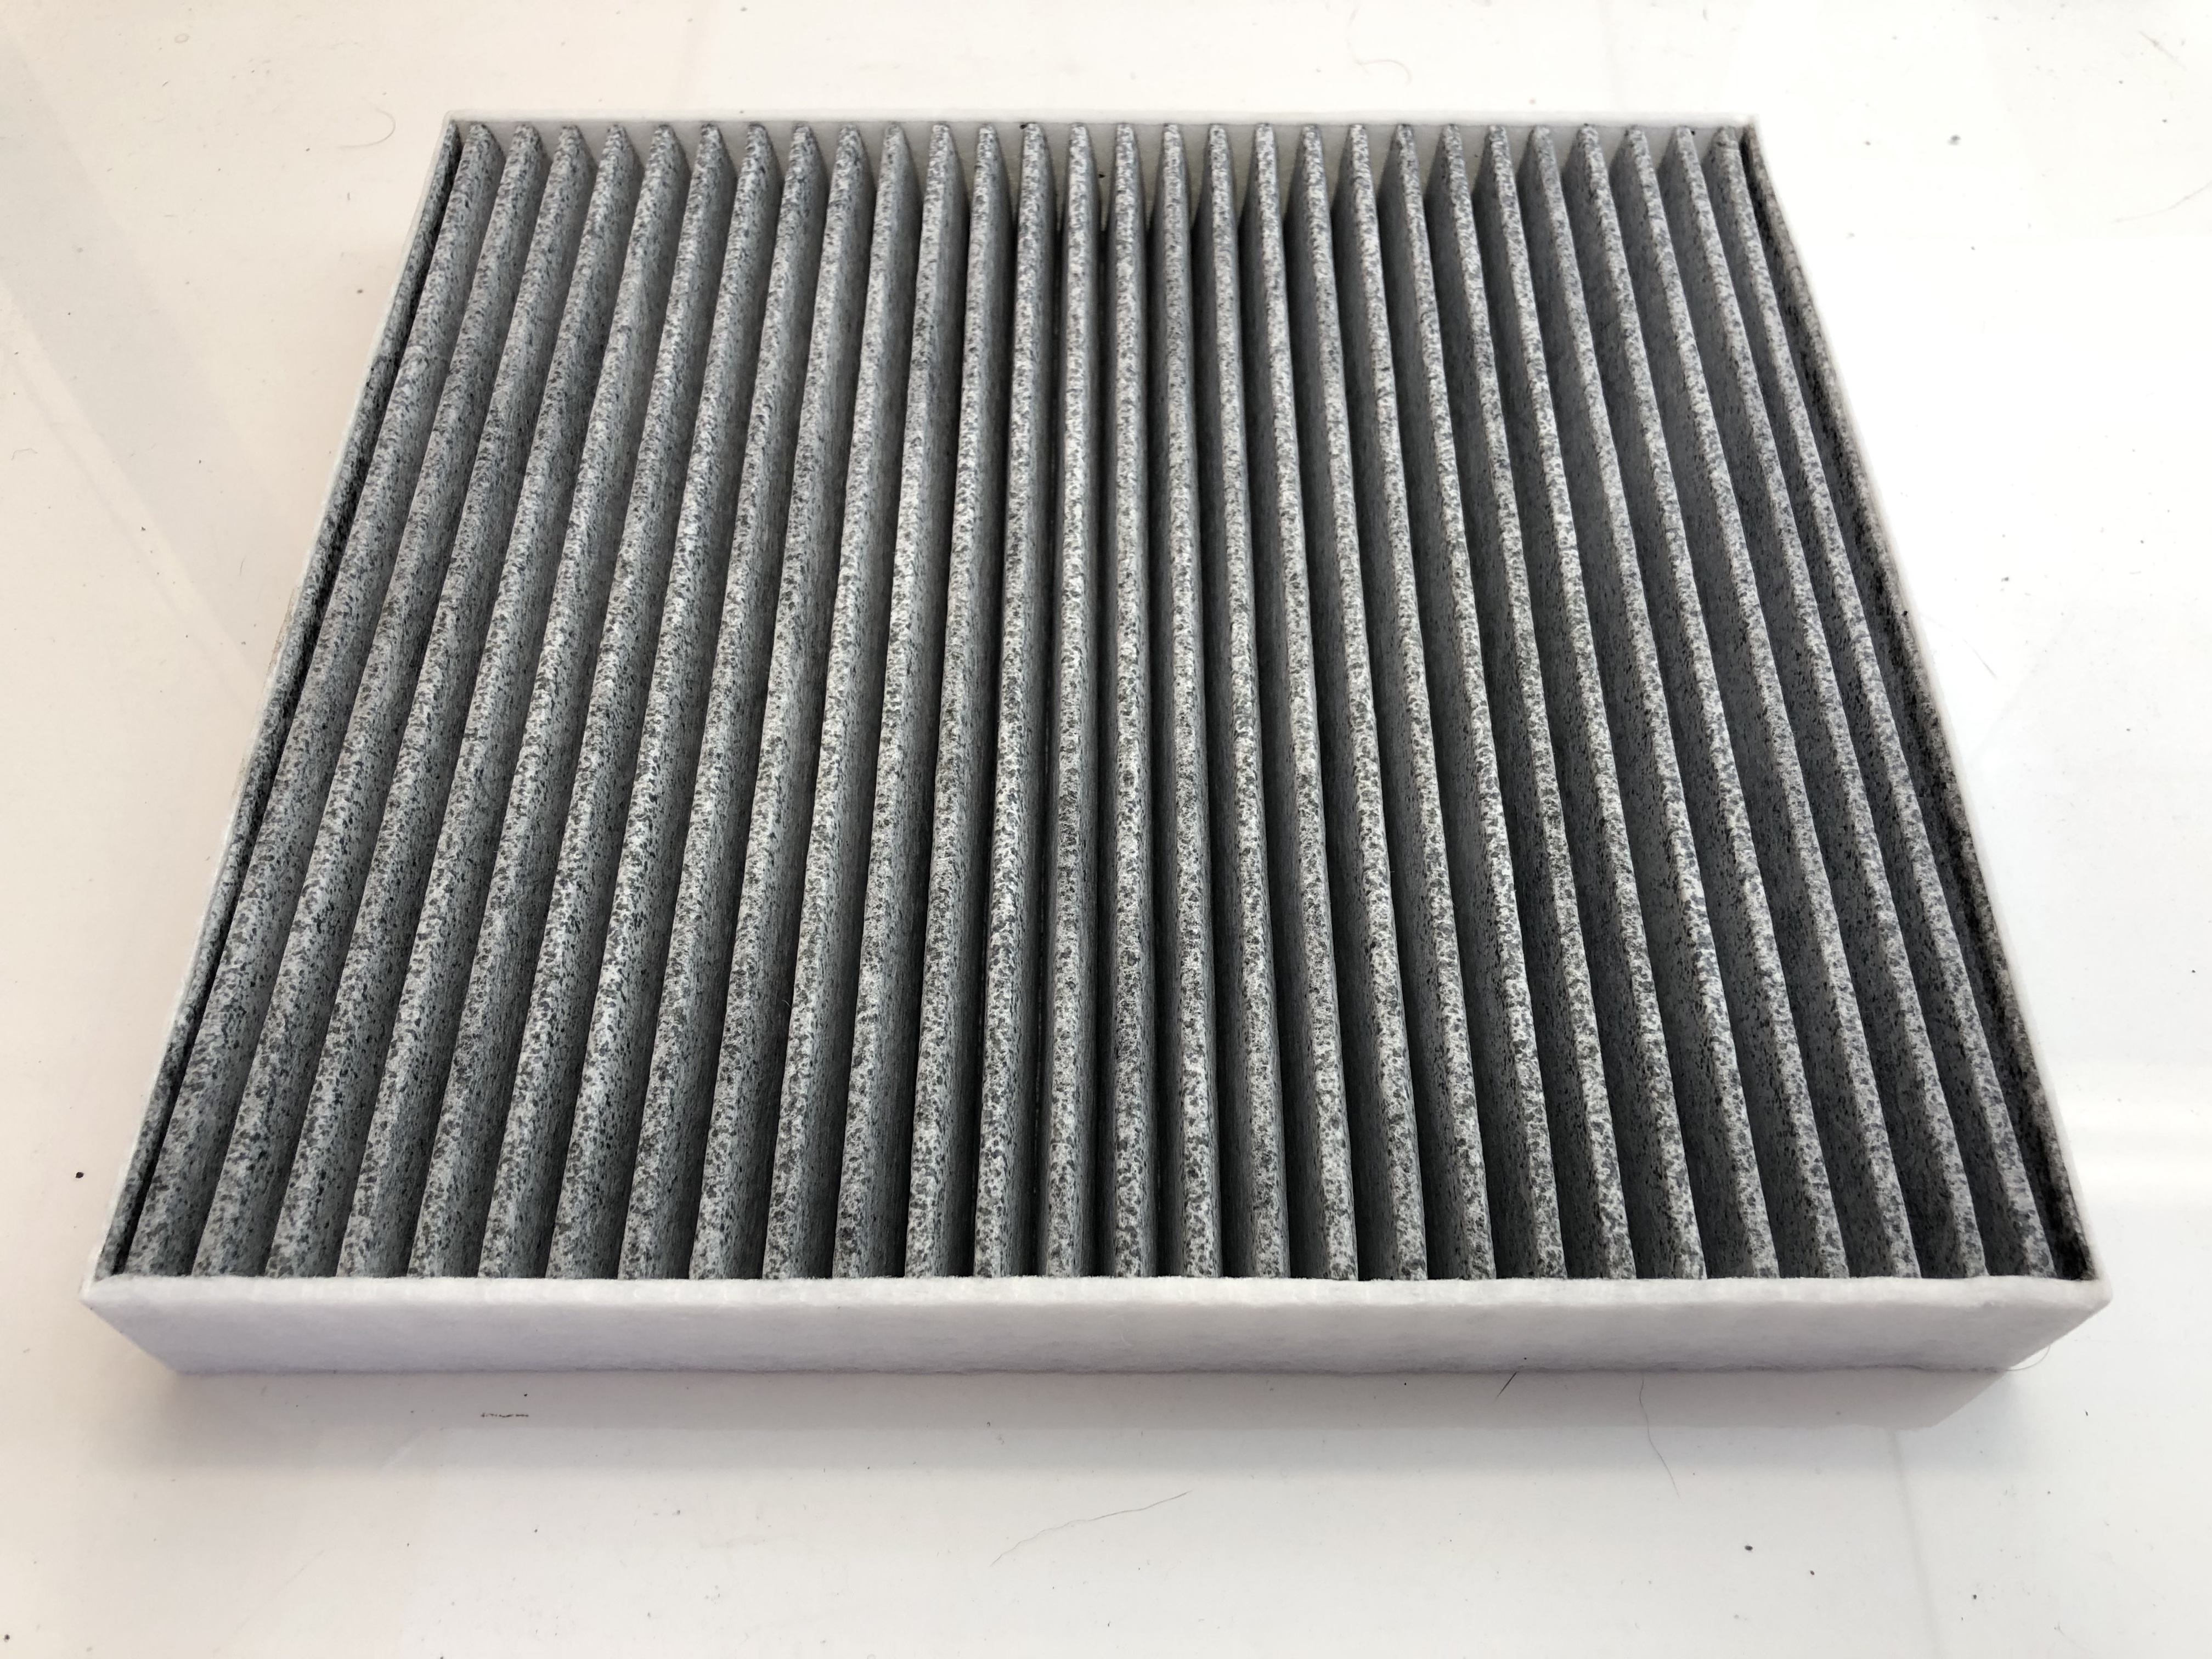 Activated Carbon Cabin Filters – Are they better than paper cabin filters?